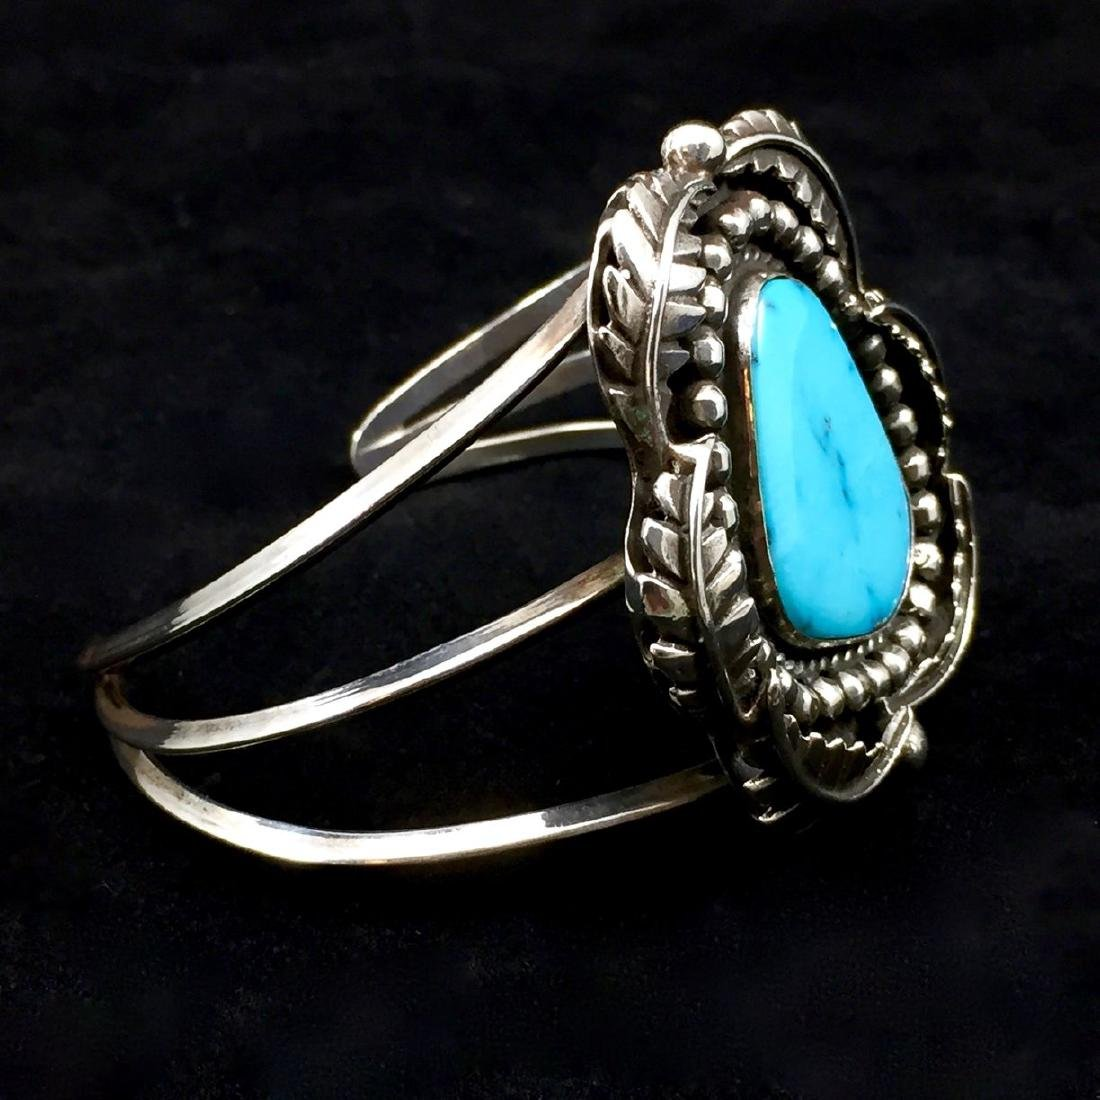 Native American Sterling Silver Turquoise Cuff Bracelet - 2